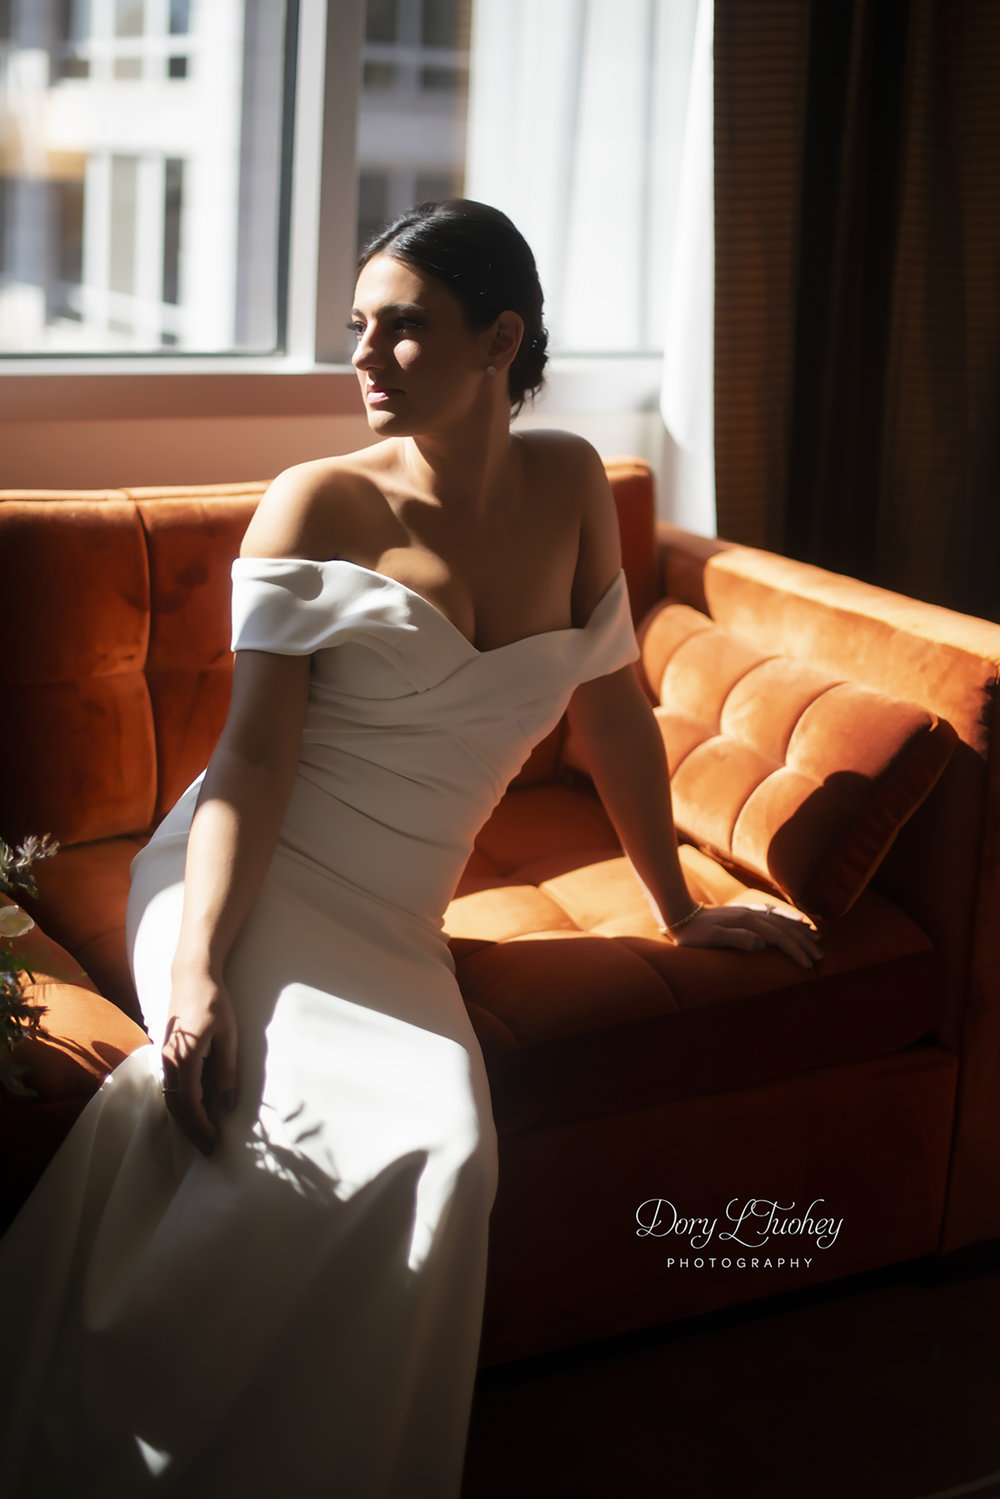 Conrad_hotel_chicago_bride_wuite_wedding_BHLDN_orange_sofa_gorgeous_natural_light_dory_tuohey_photographer.jpg